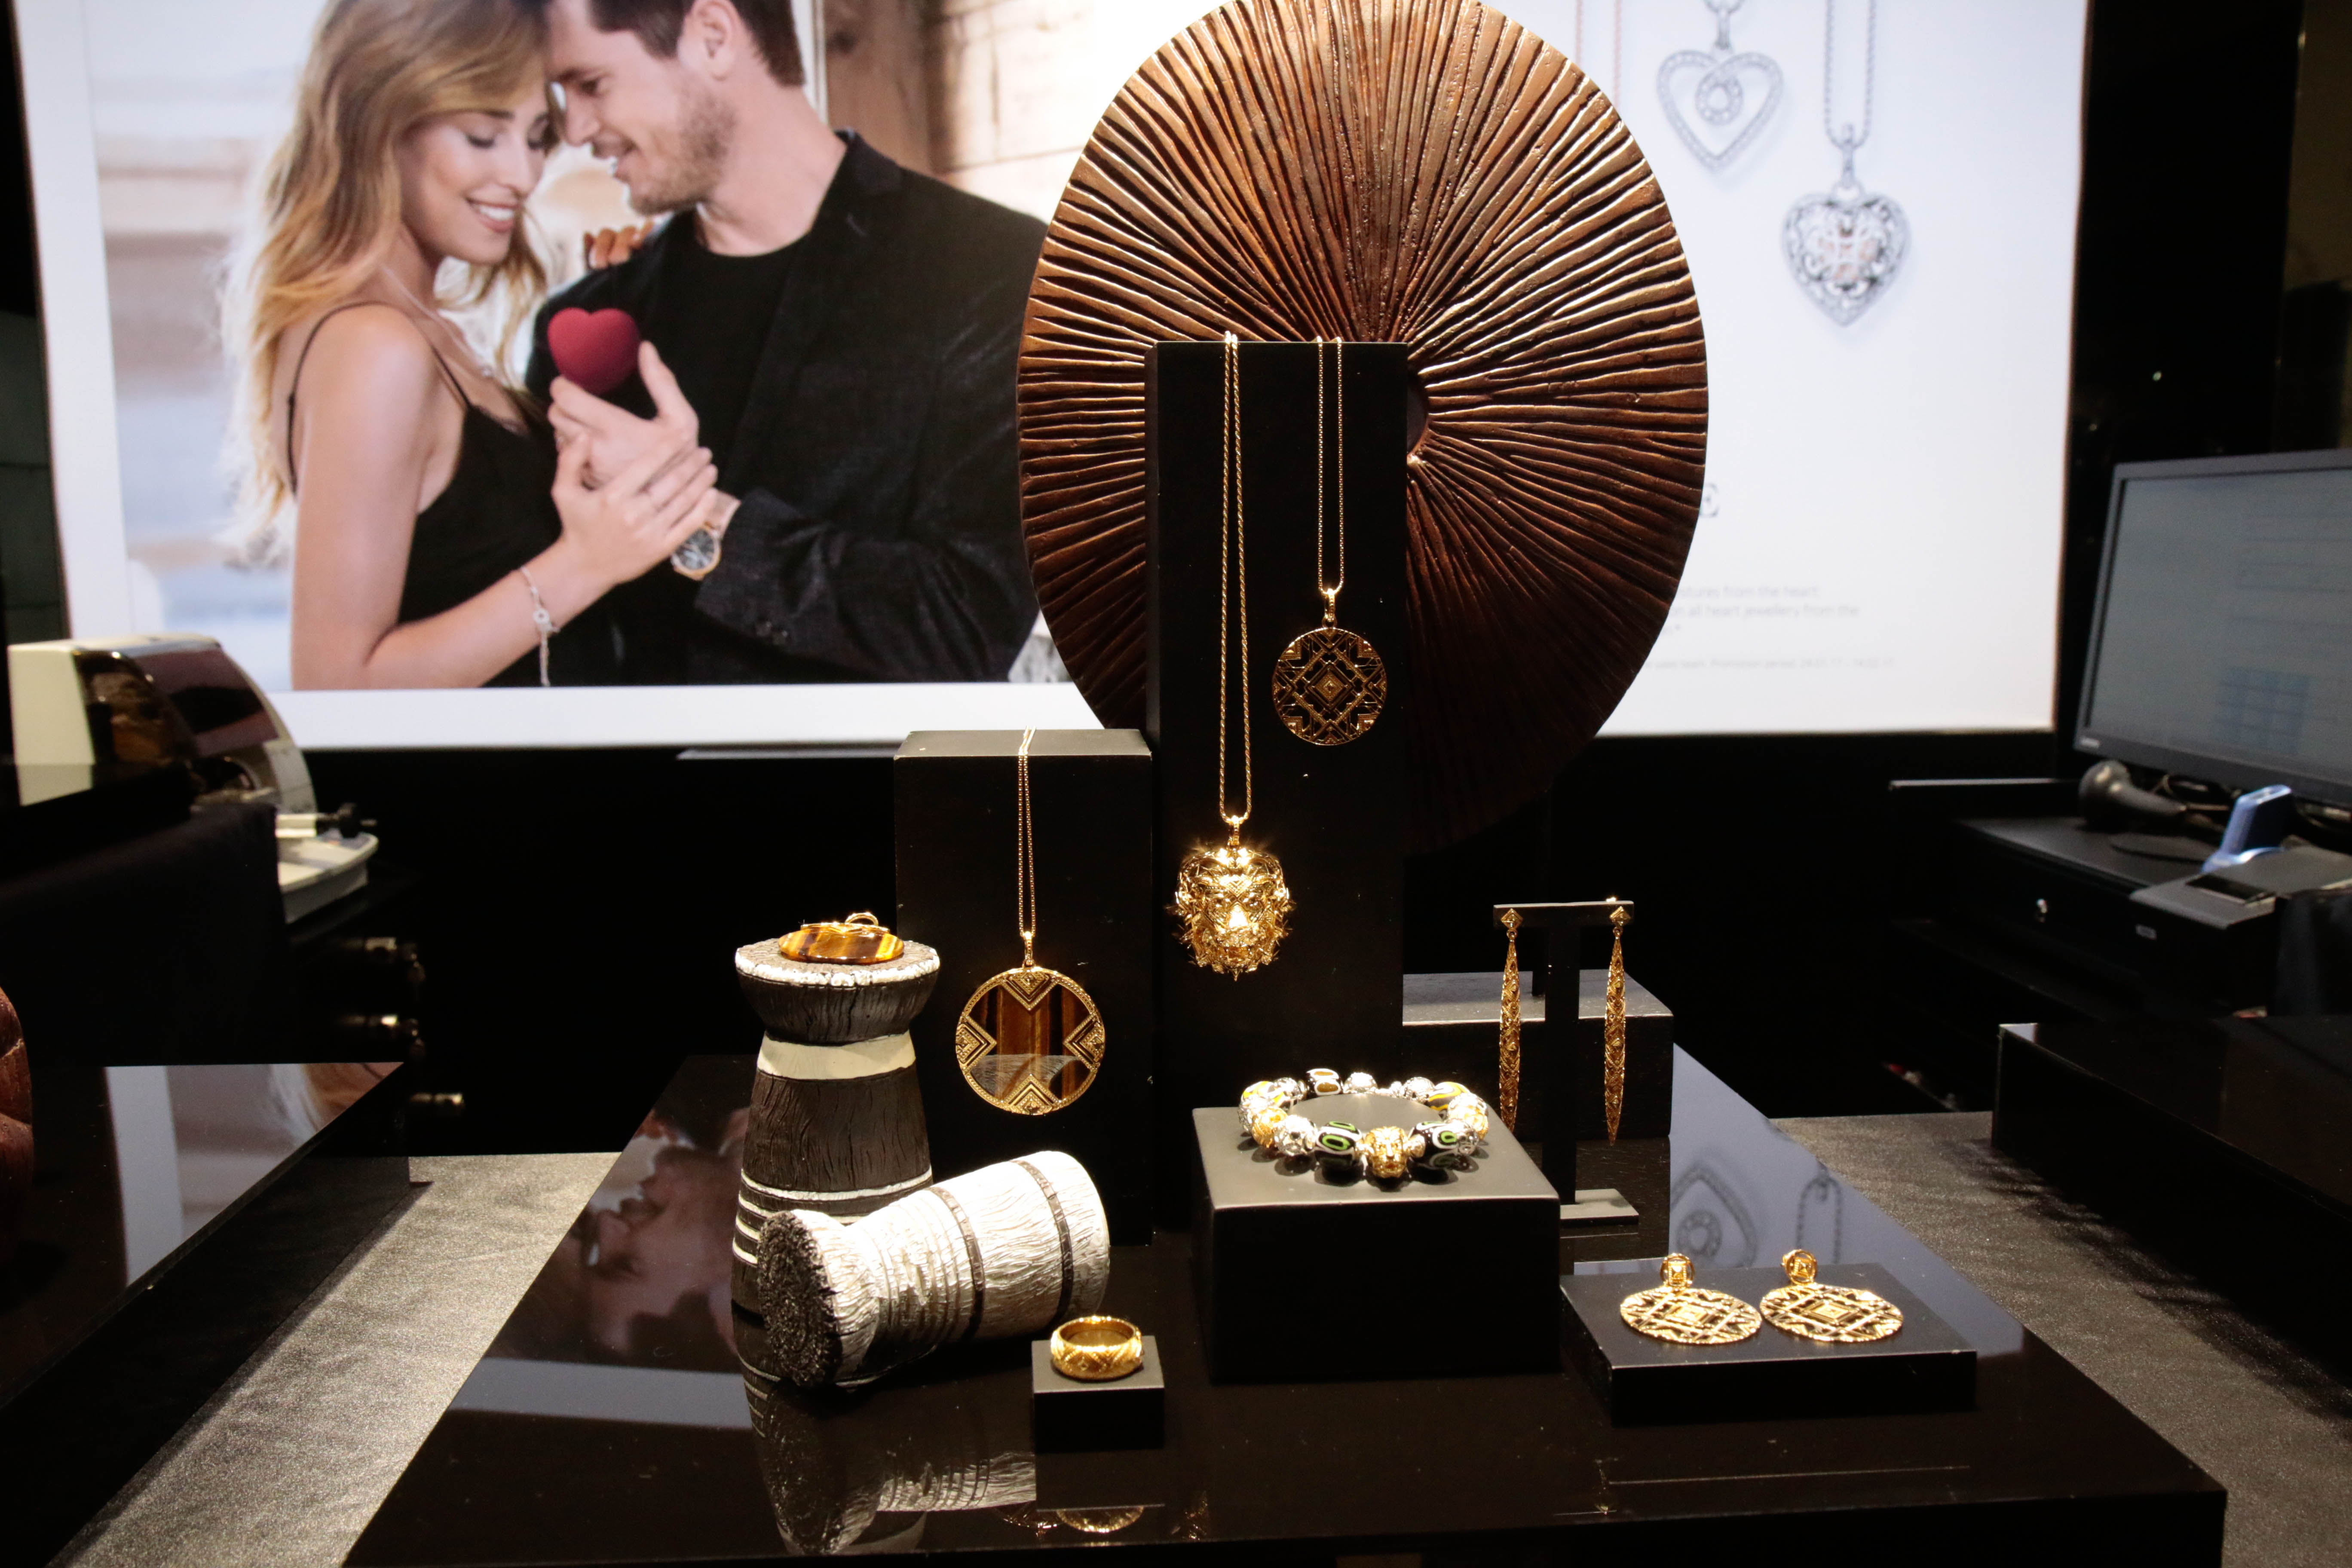 Presentation of the 2017 Spring/Summer jewelry collection from Thomas Sabo. Jewelry display from the interior of a store.